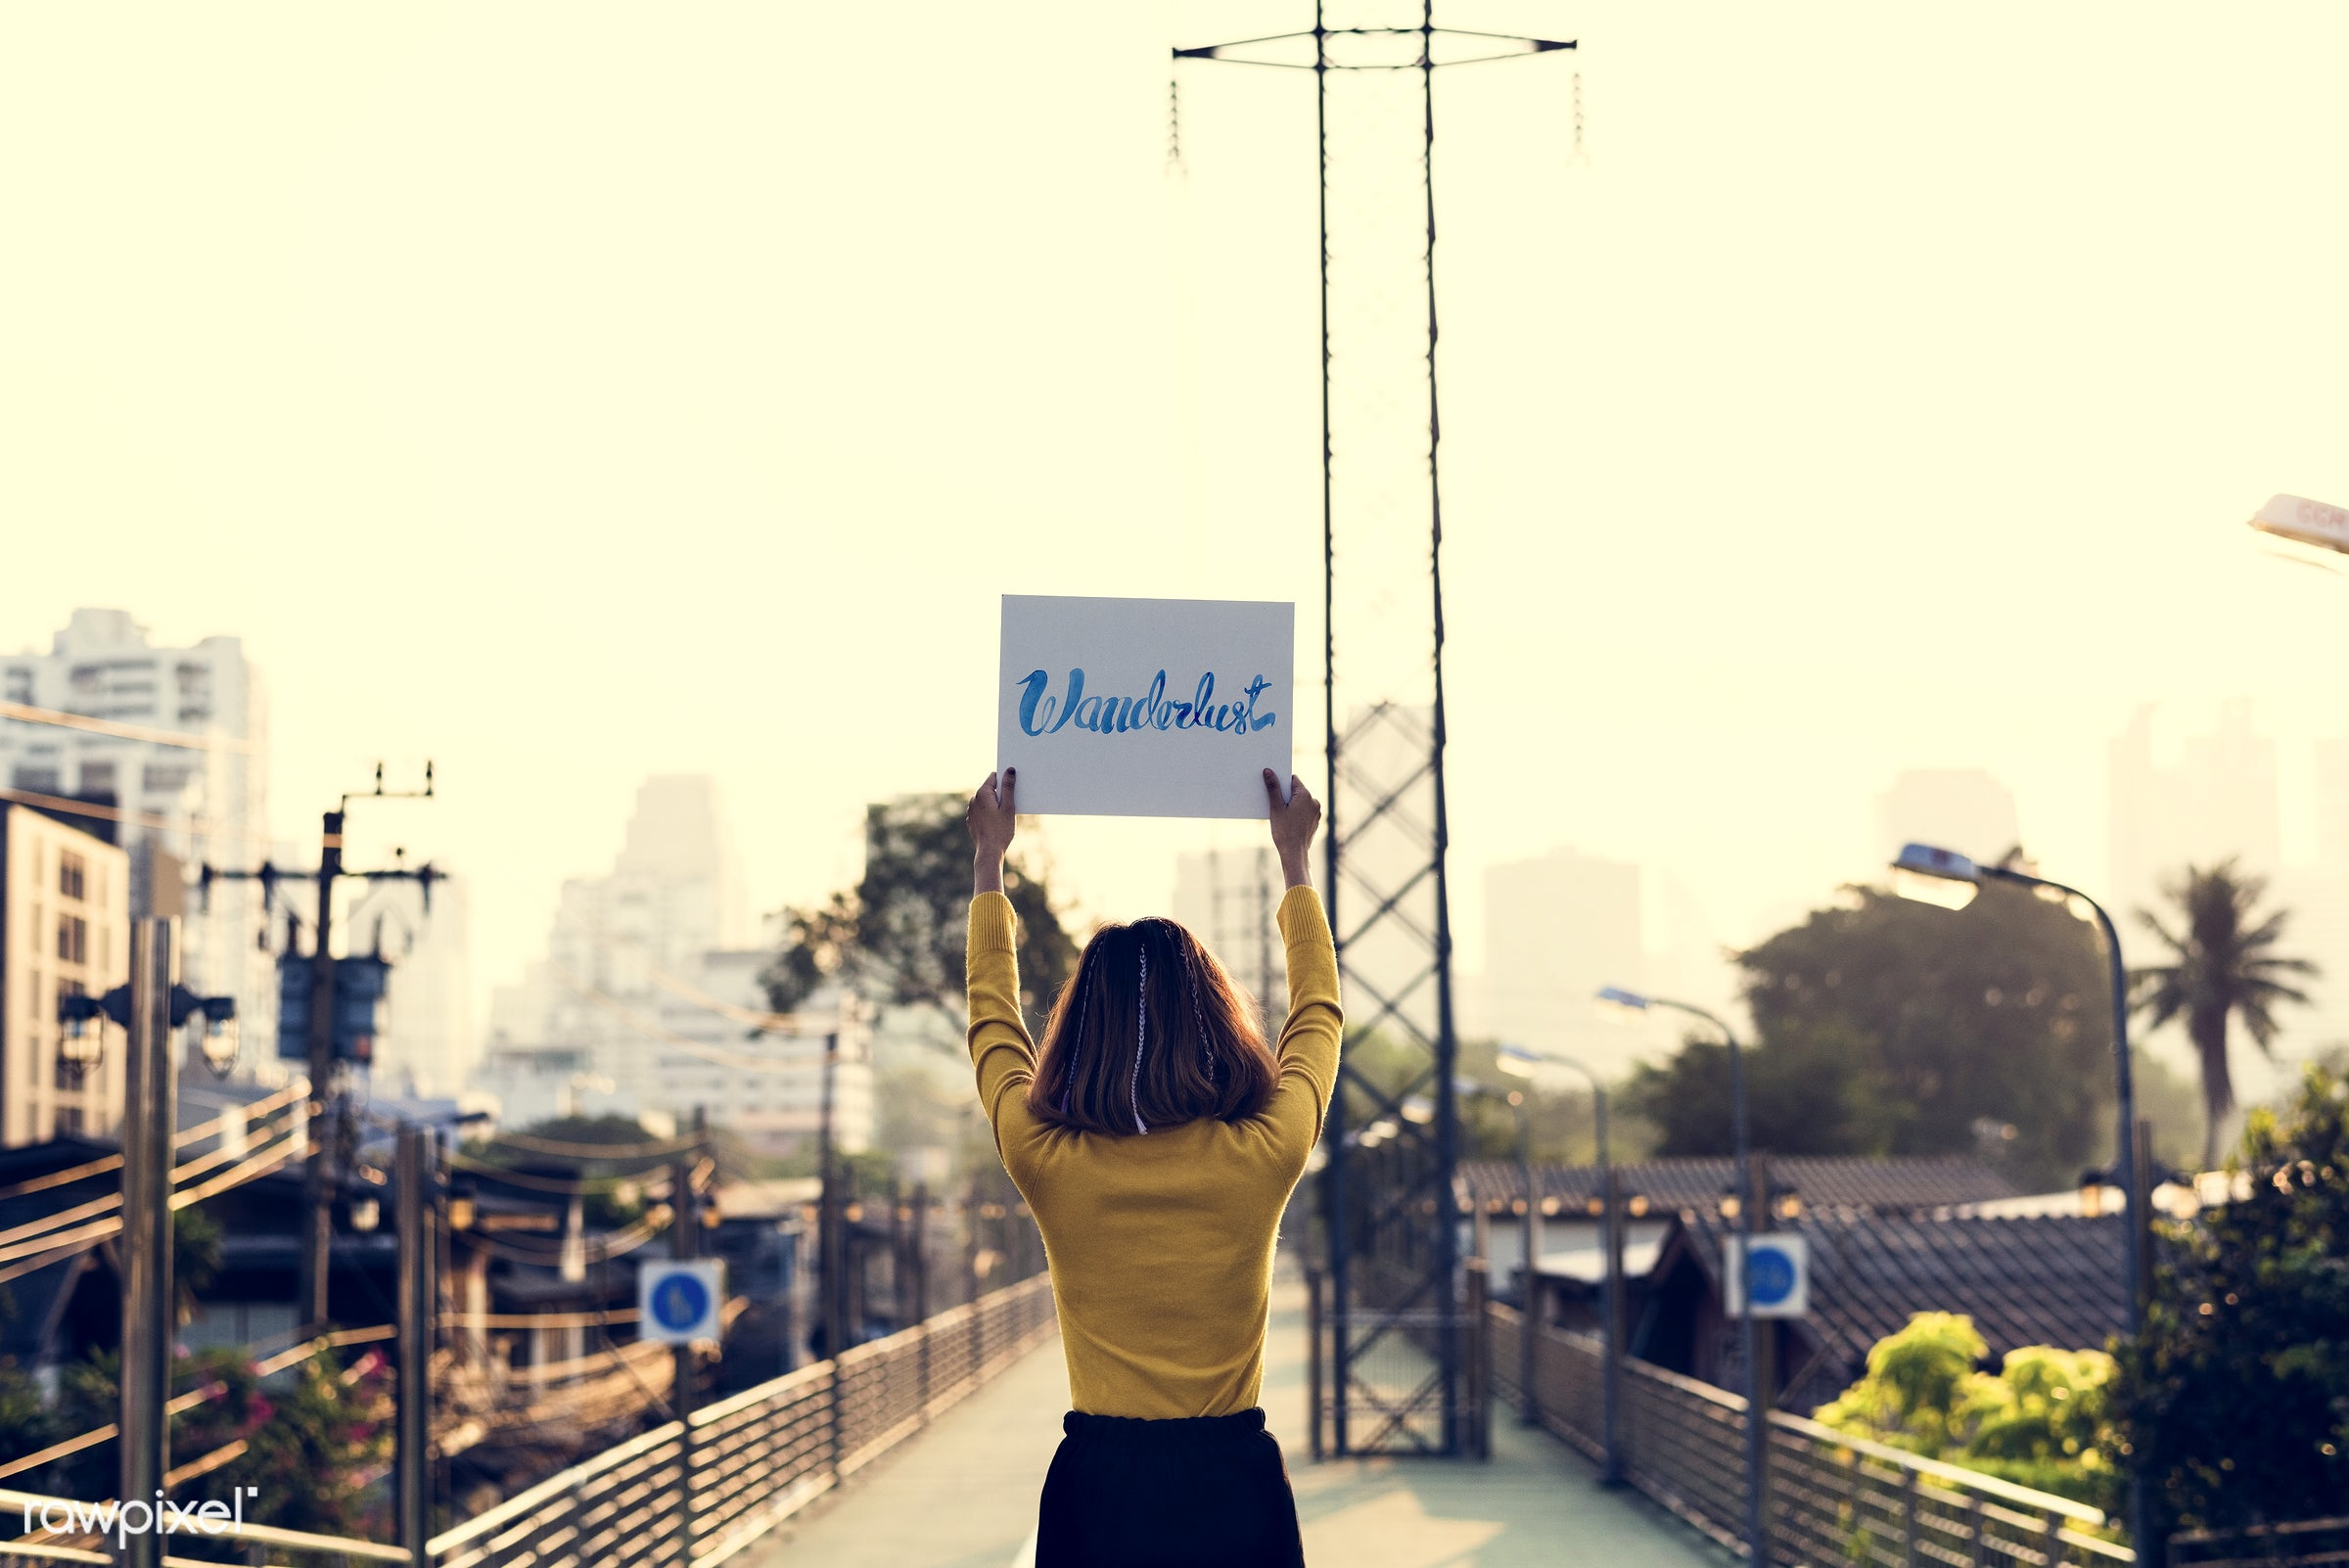 holding, woman, girl, wanderlust, trip, travel, text, signage, banner, standing, person, placard, rear view, city